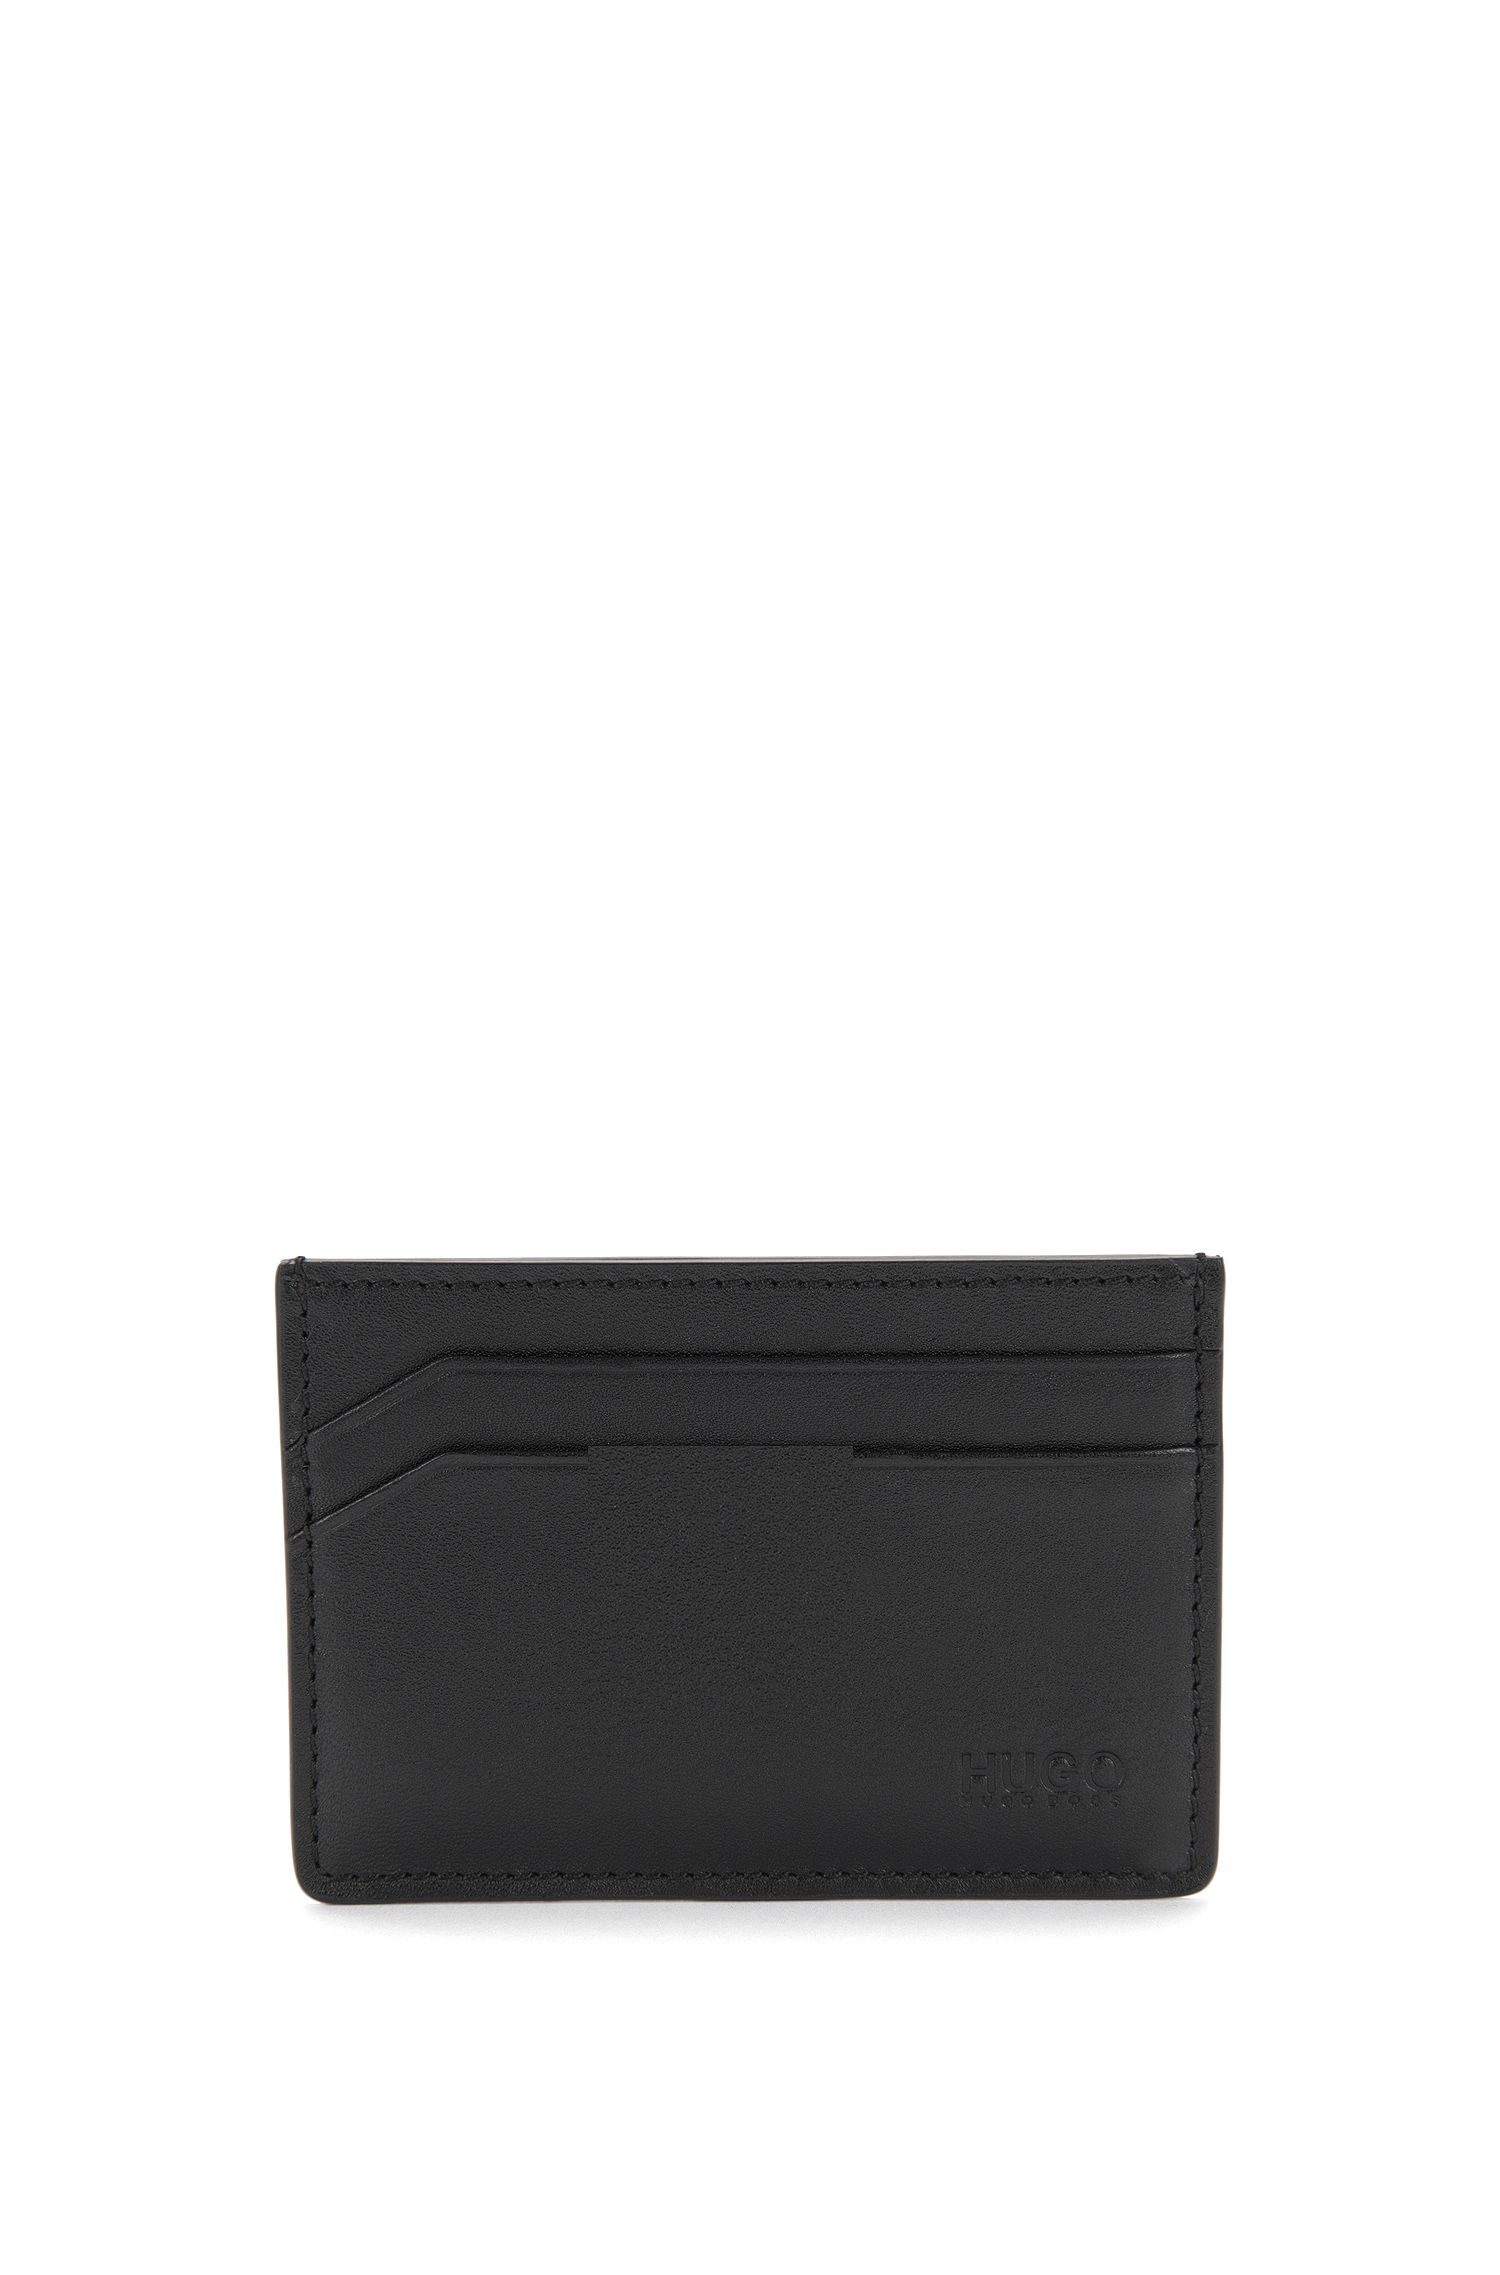 'Subway S Card' | Leather Card Case